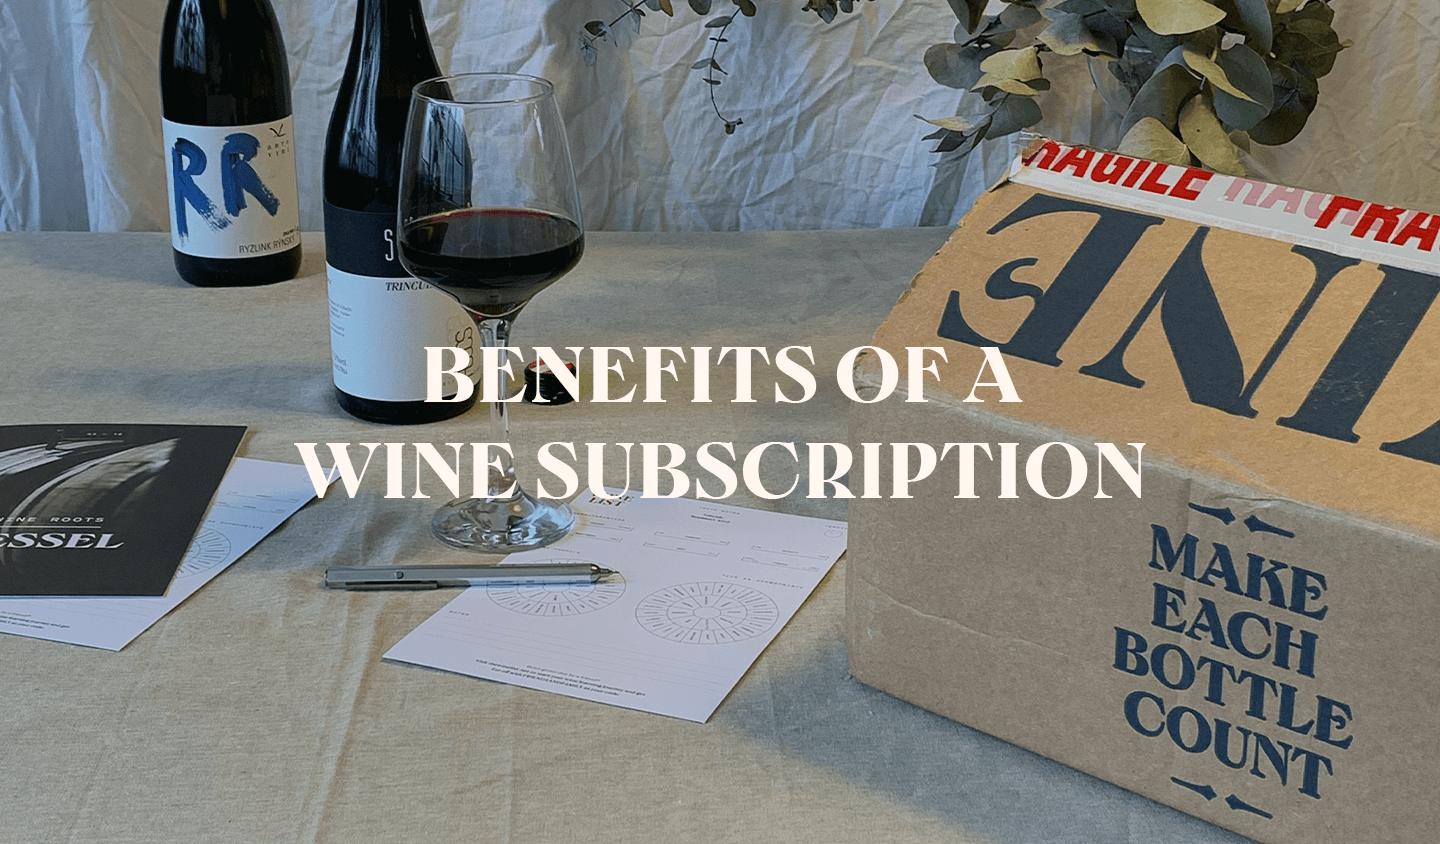 How does a wine subscription work?